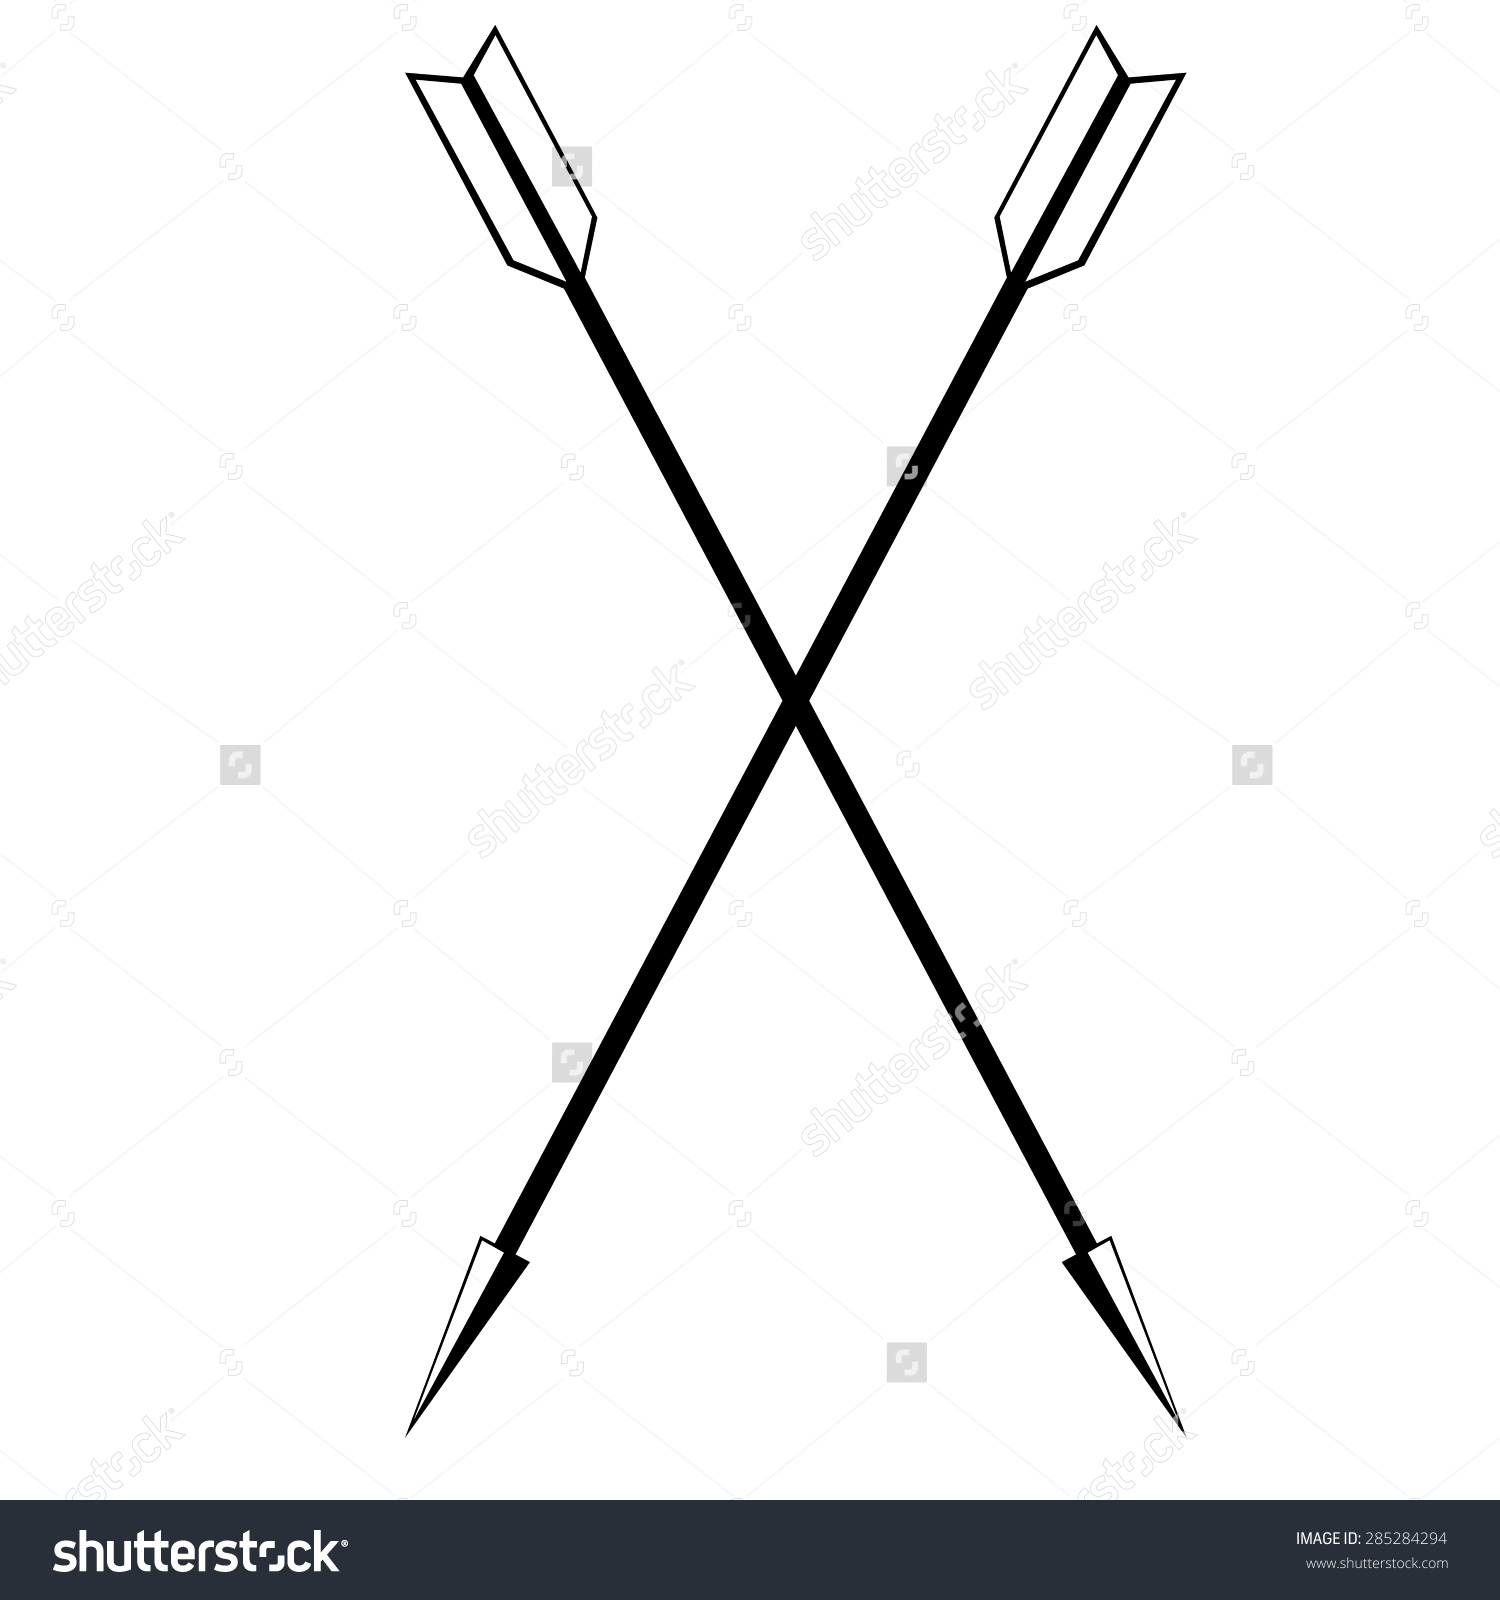 Bow clipart medieval. Arrow weapon